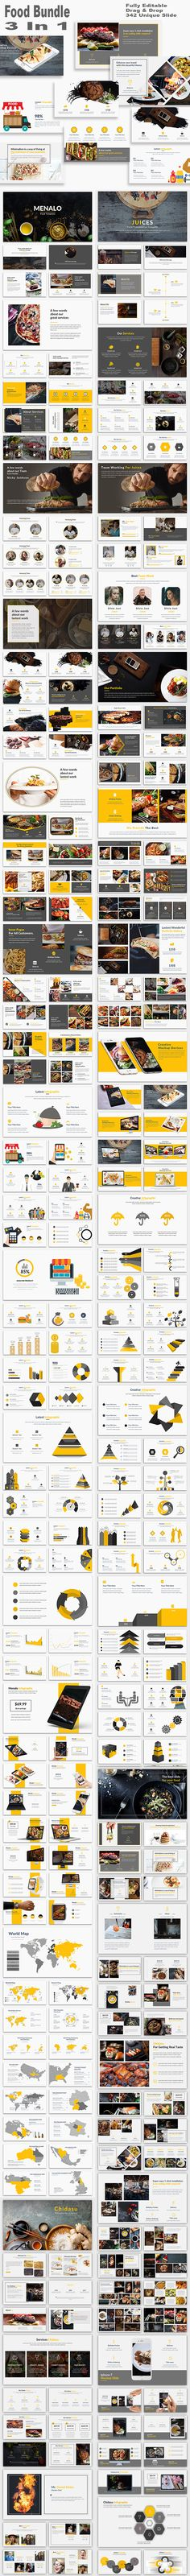 455 Best Powerpoint Template images in 2018 | Keynote template